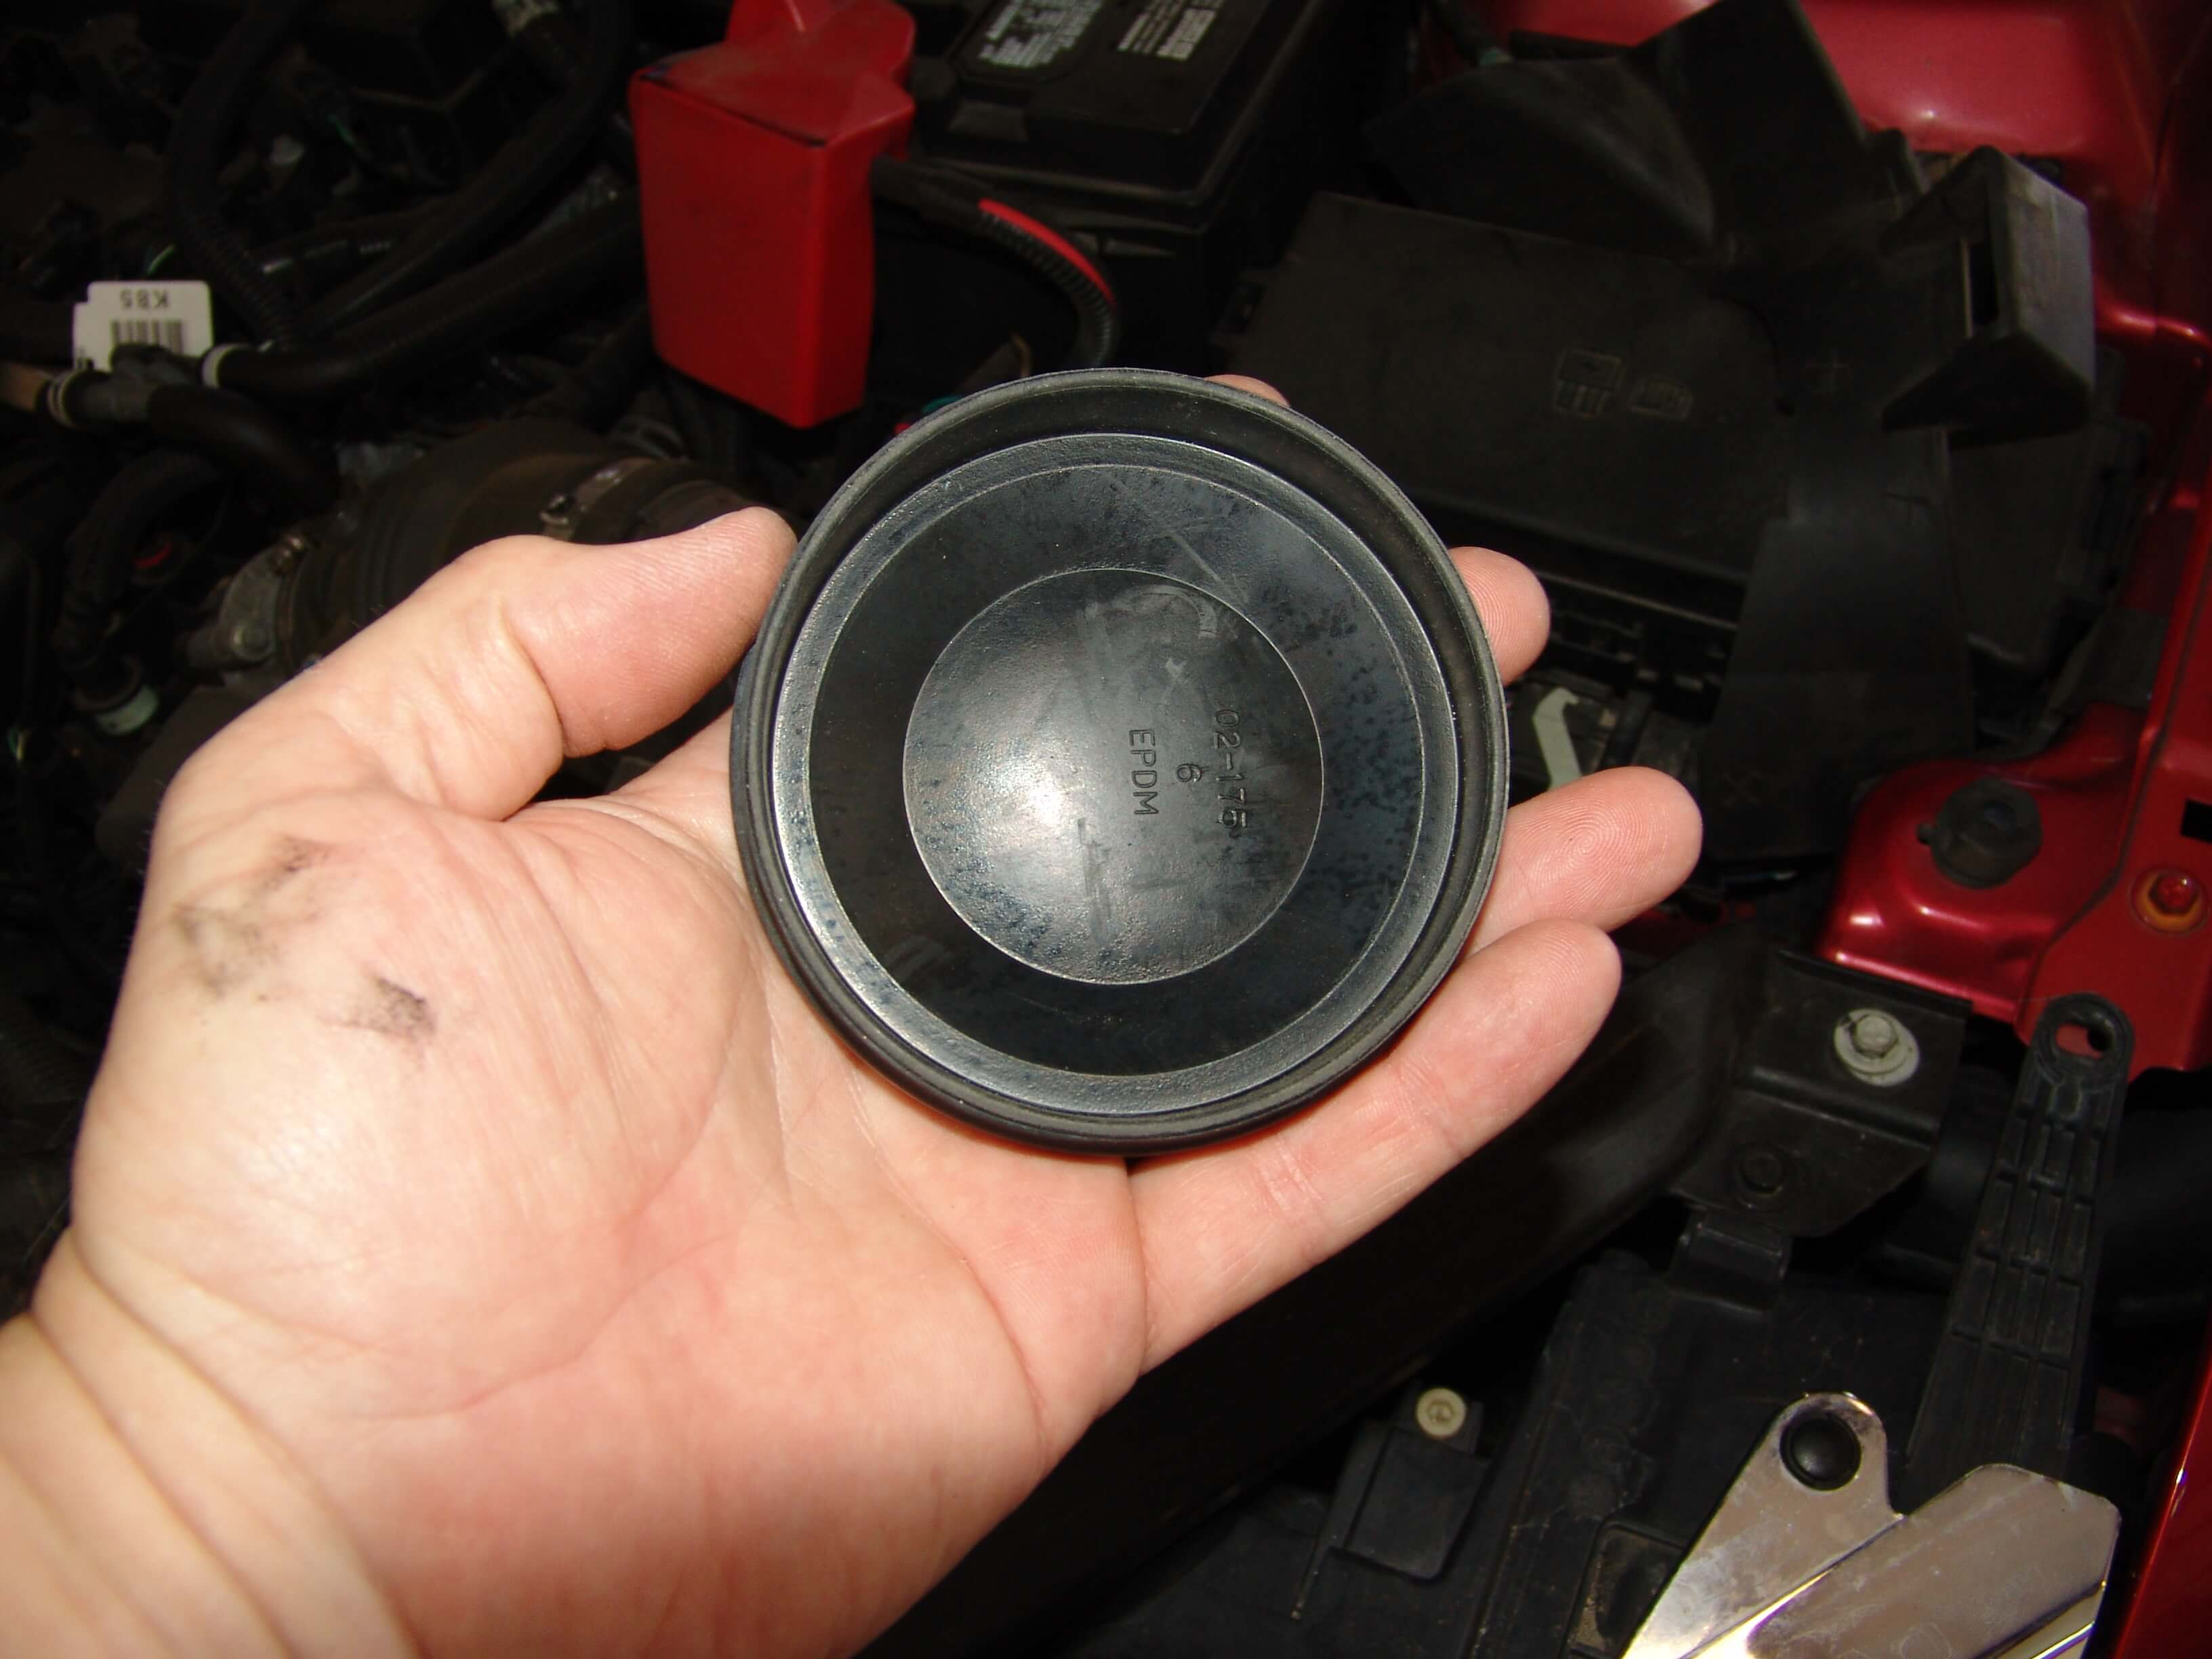 Sparkys Answers 2012 Ford Fusion Low Beam Headlight Does Not Work F 150 Fuse Disconnecting The Harness From Bulb While It Was Still Installed Too Difficult Given Size Of My Hands And Forearms